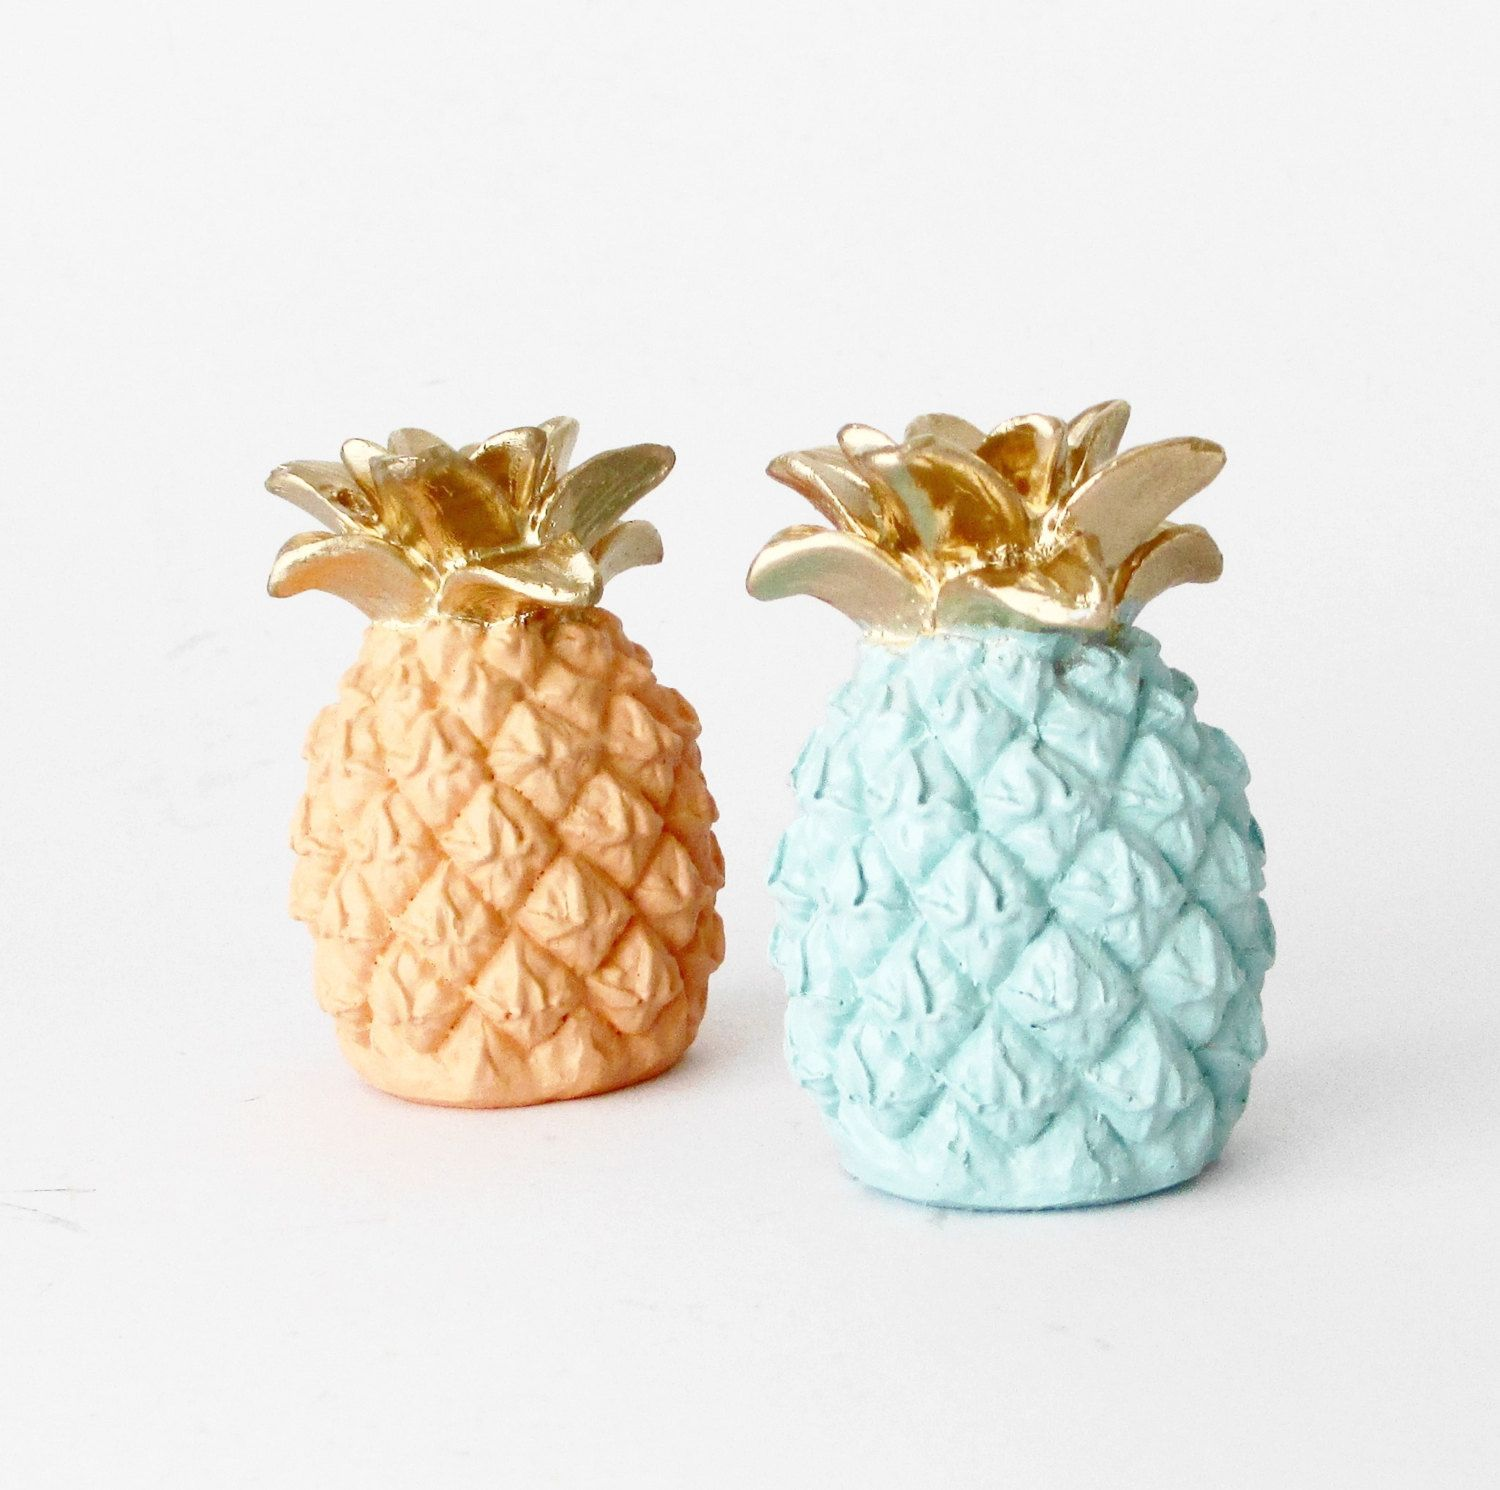 Pineapple Pair Pineapple Homewares Pineapple Sculpture Pineapples     Pineapple Pair Pineapple Homewares Pineapple Sculpture Pineapples Fruit Decor  Pineapple Decor Pineapple Fruit Ornament Home Decor  26 00 USD  by